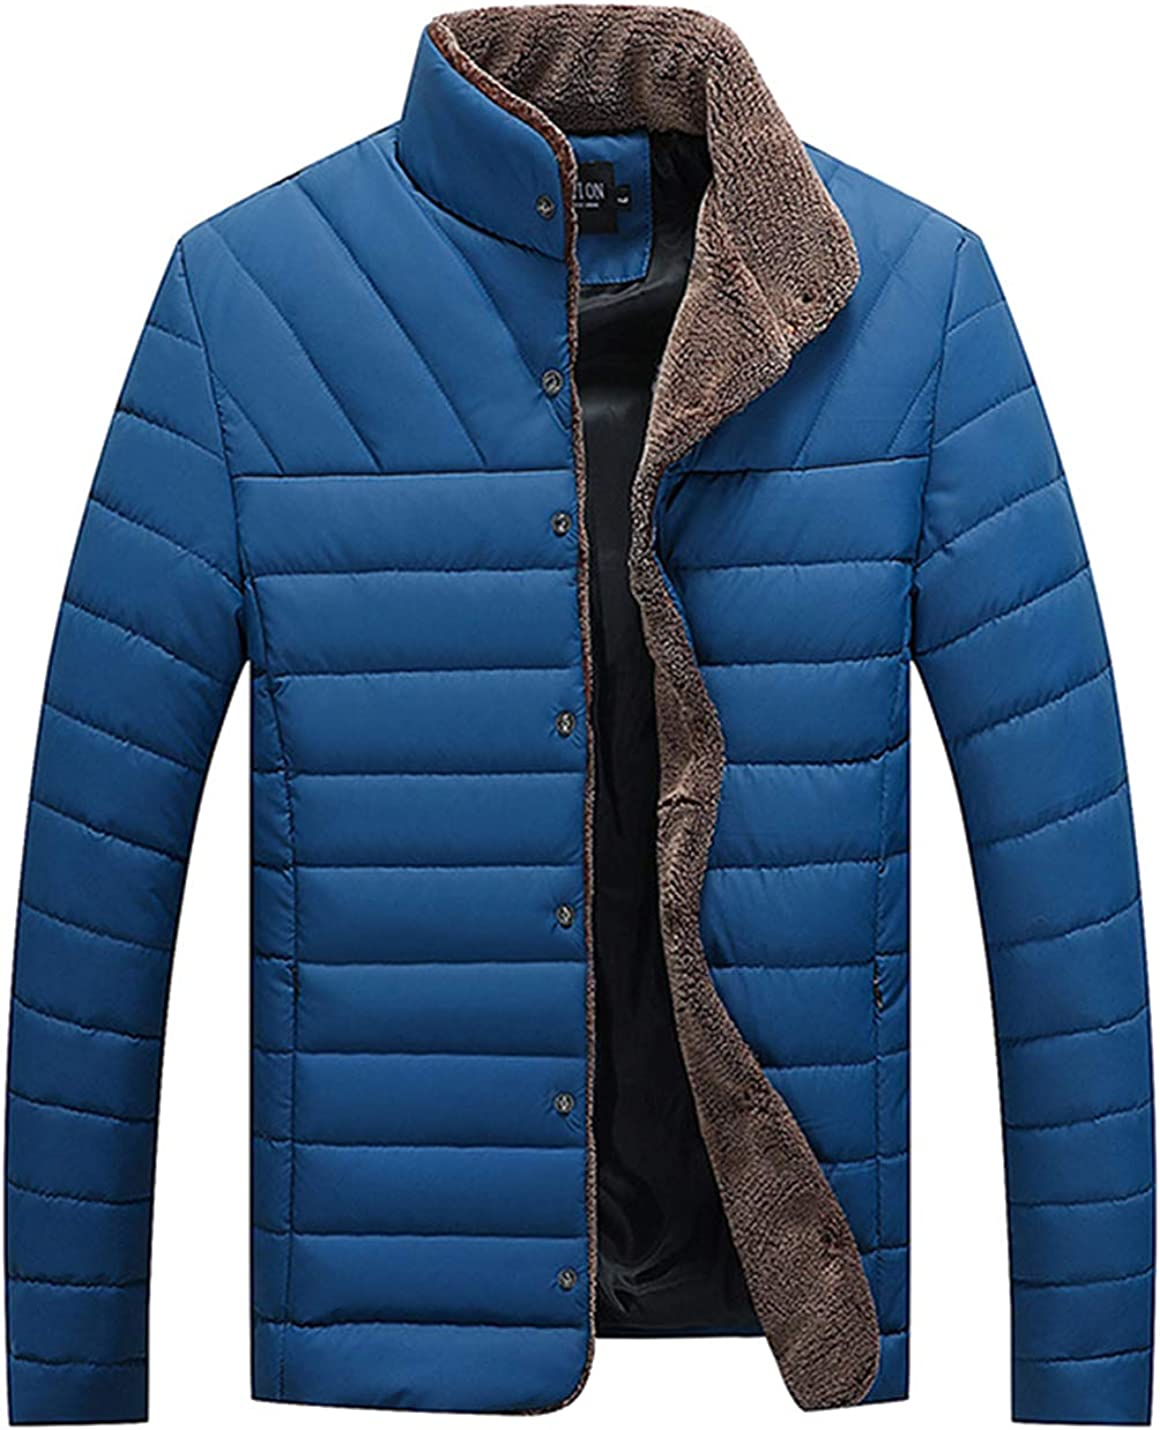 Yeokou Mens Slim Solid Cotton Padded Short Quilted Pu Faux Leather Jacket Outwear